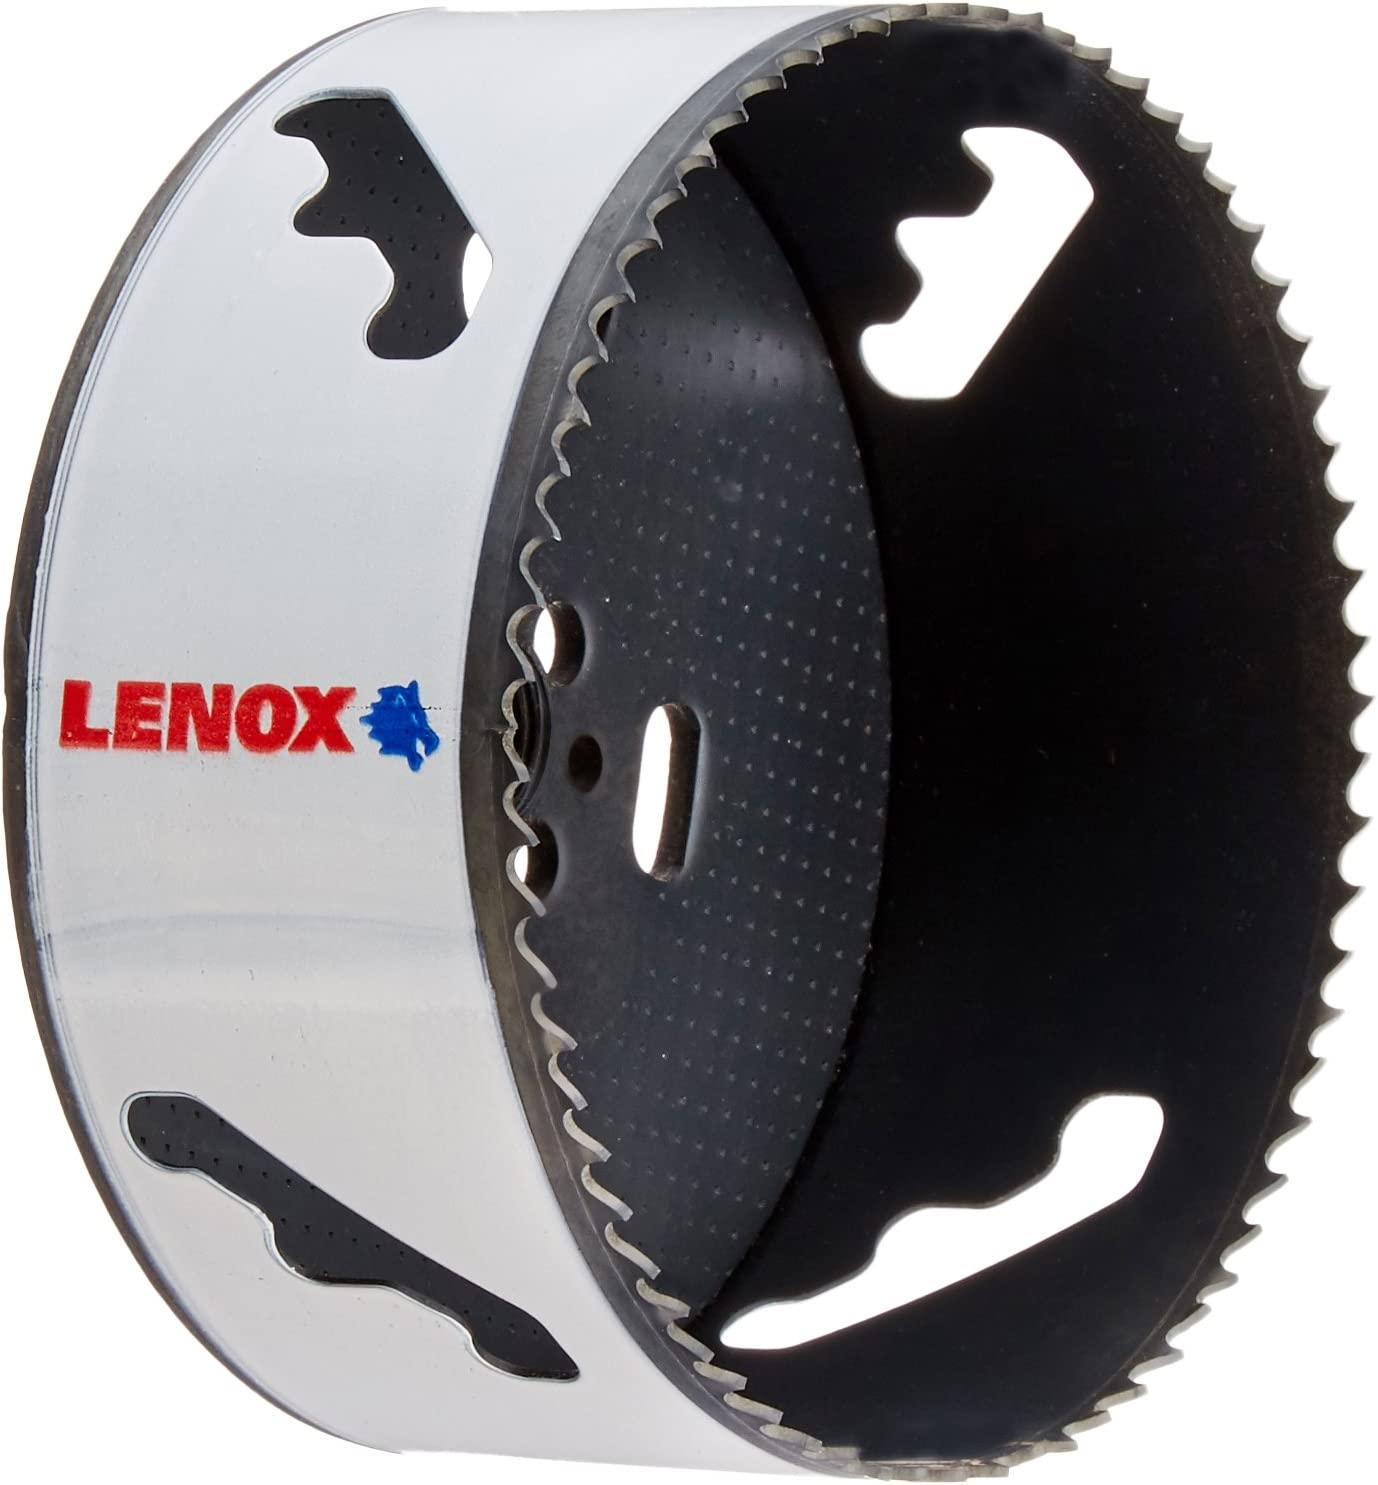 Lenox Carbide Tipped Metal Hole Saw with arbor and stop collar 38mm 1 1//2 inch